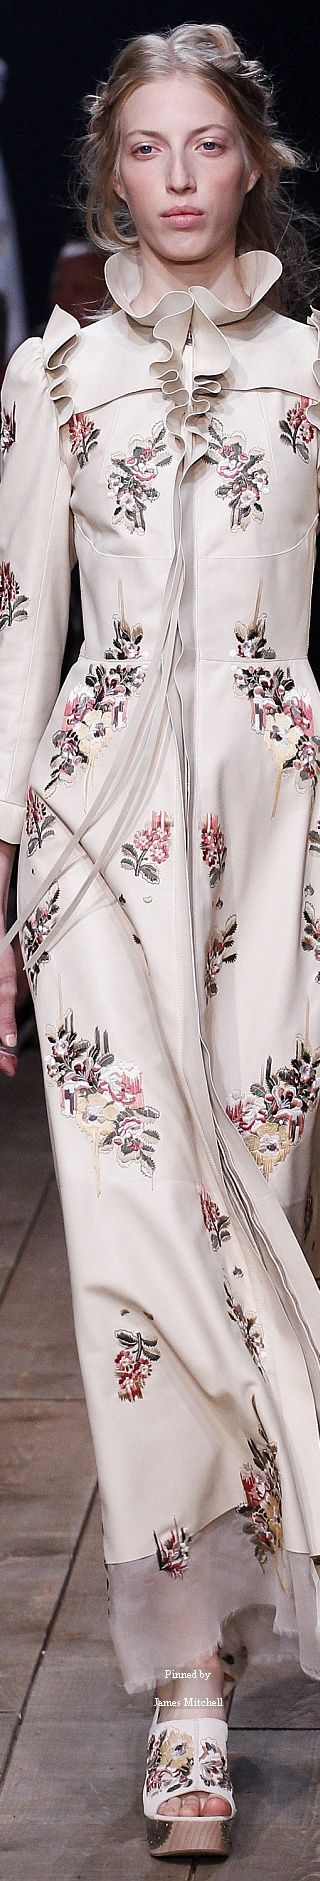 Alexander McQueen Collection Spring 2016 Ready-to-Wear ...